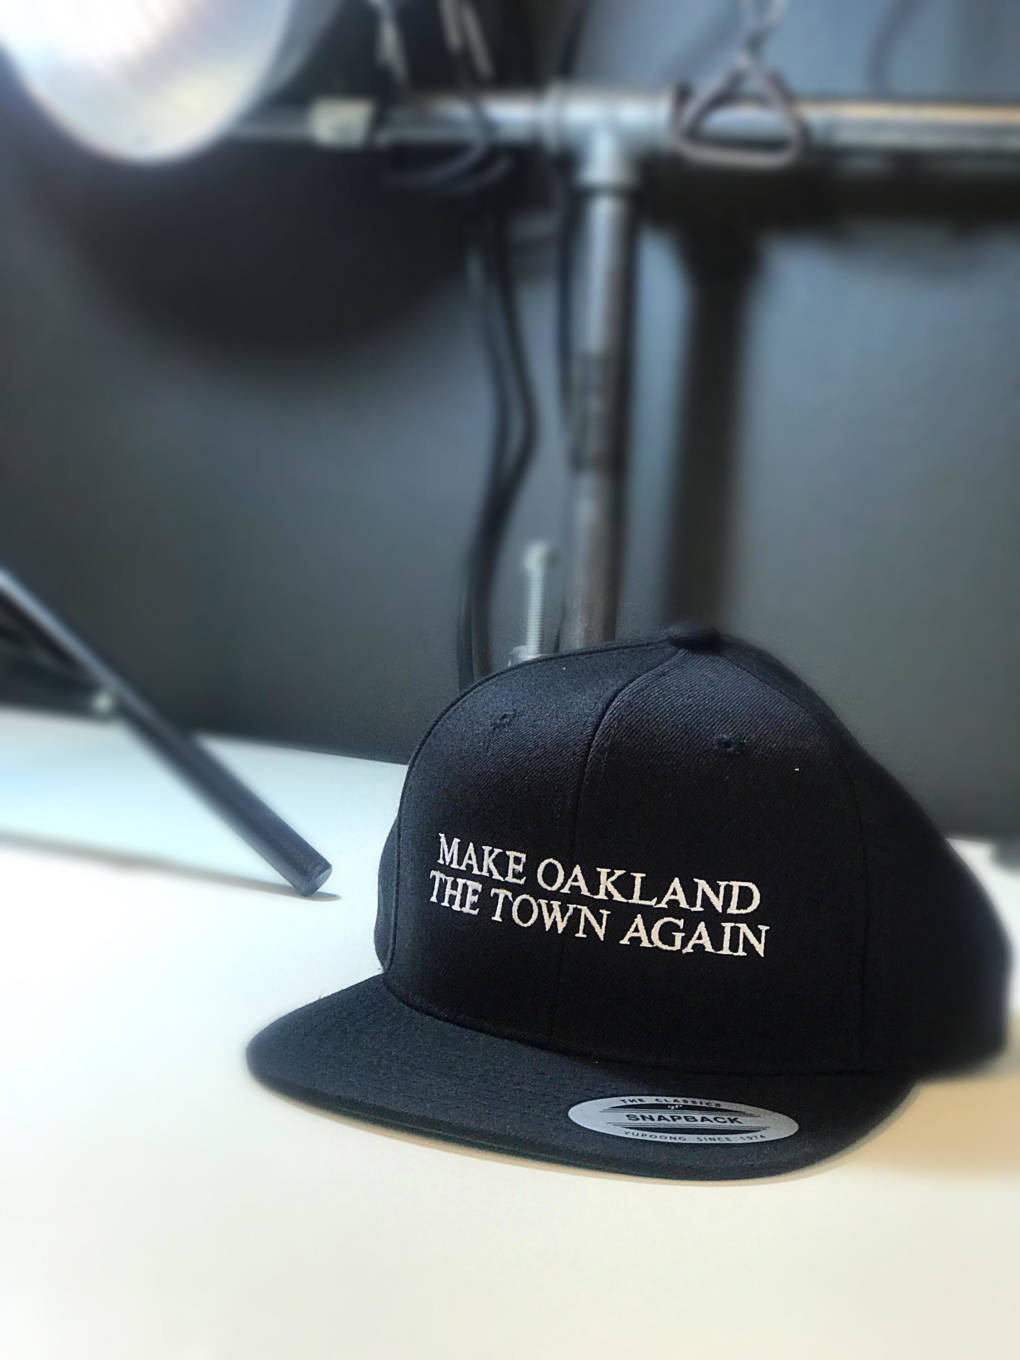 I Am The Town's 'Make Oakland The Town Again' hat.